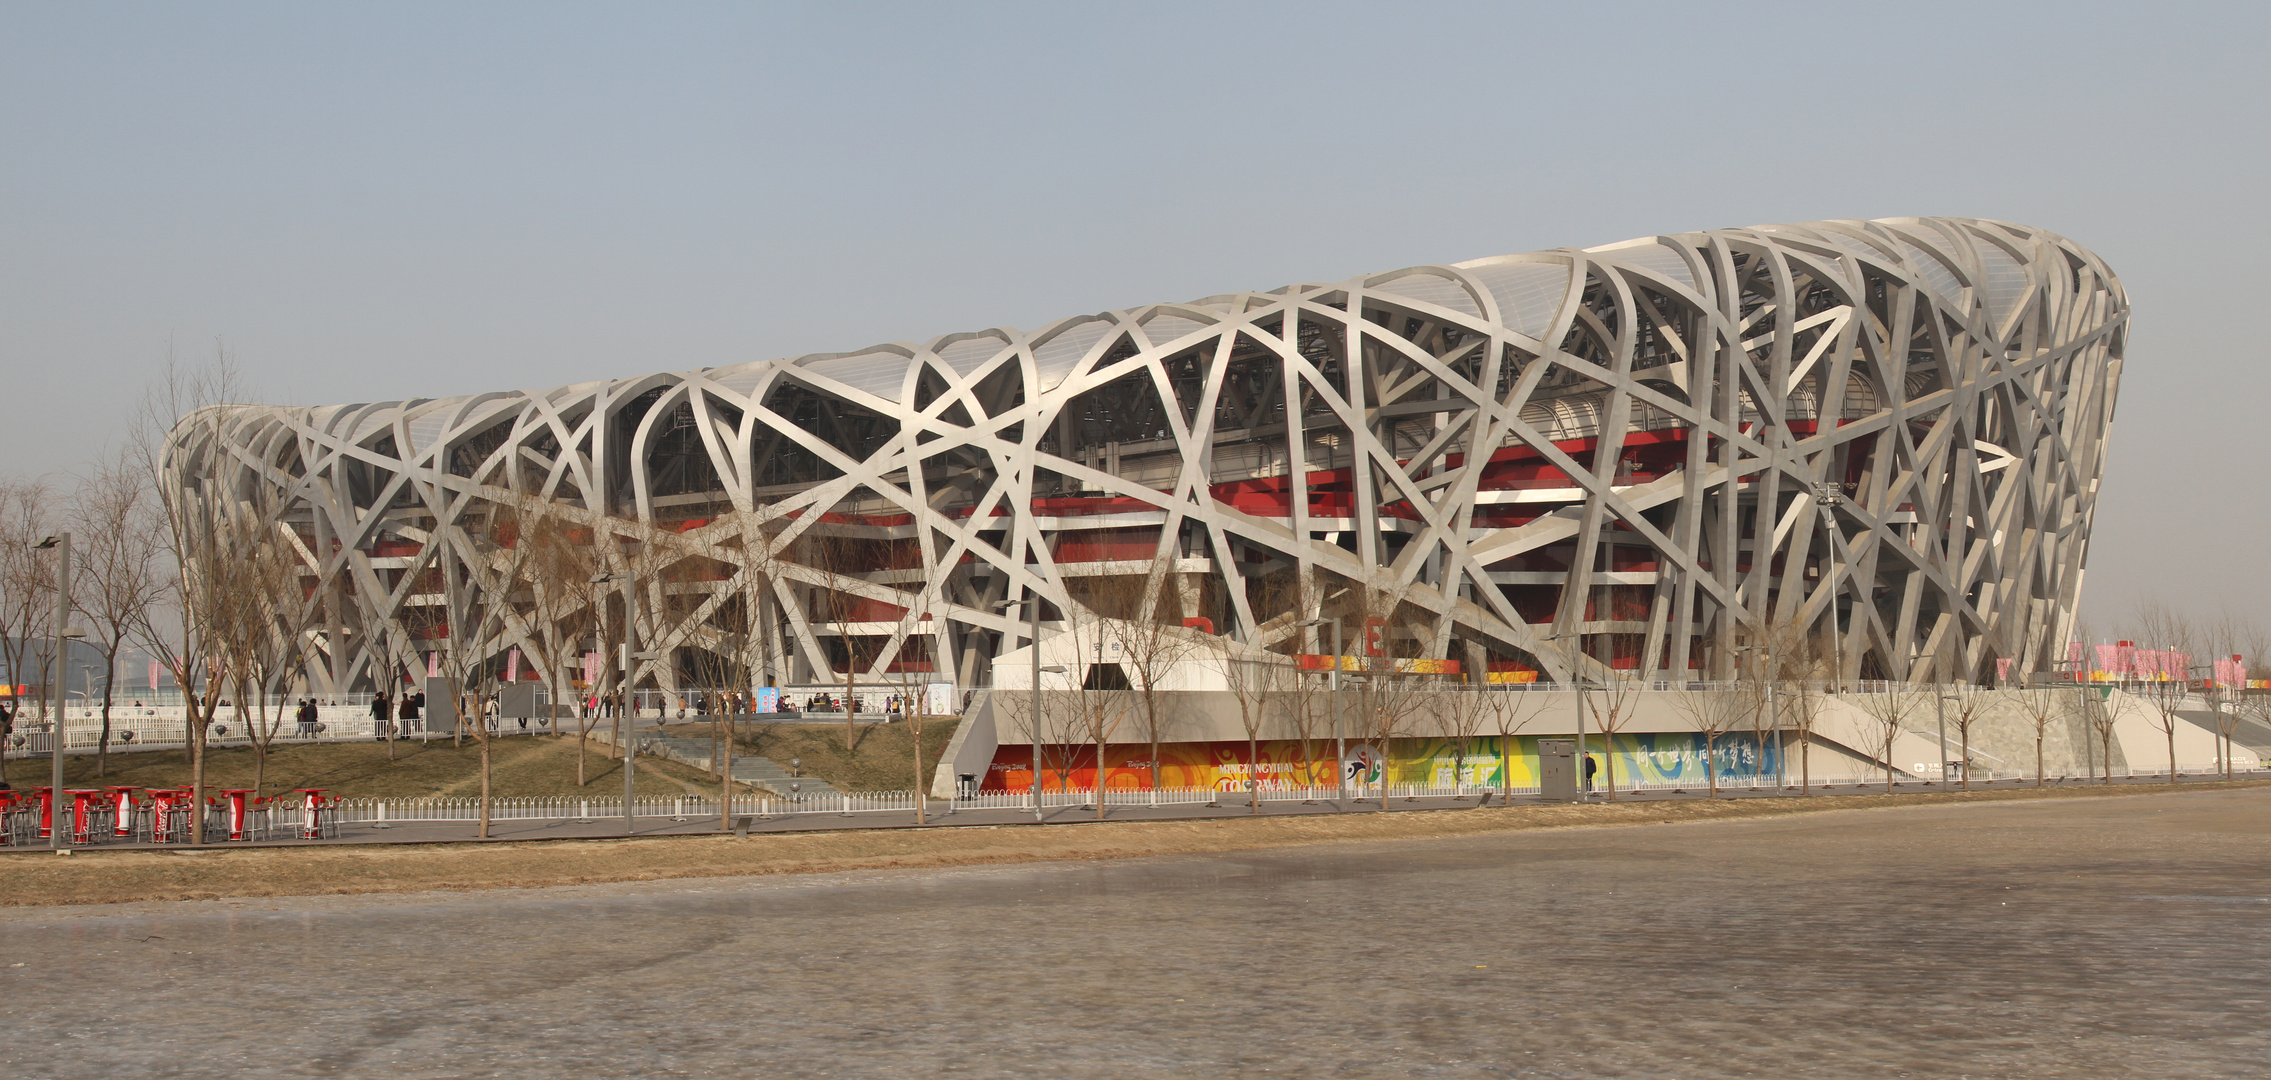 Birdnest Beijing, on a very cold day